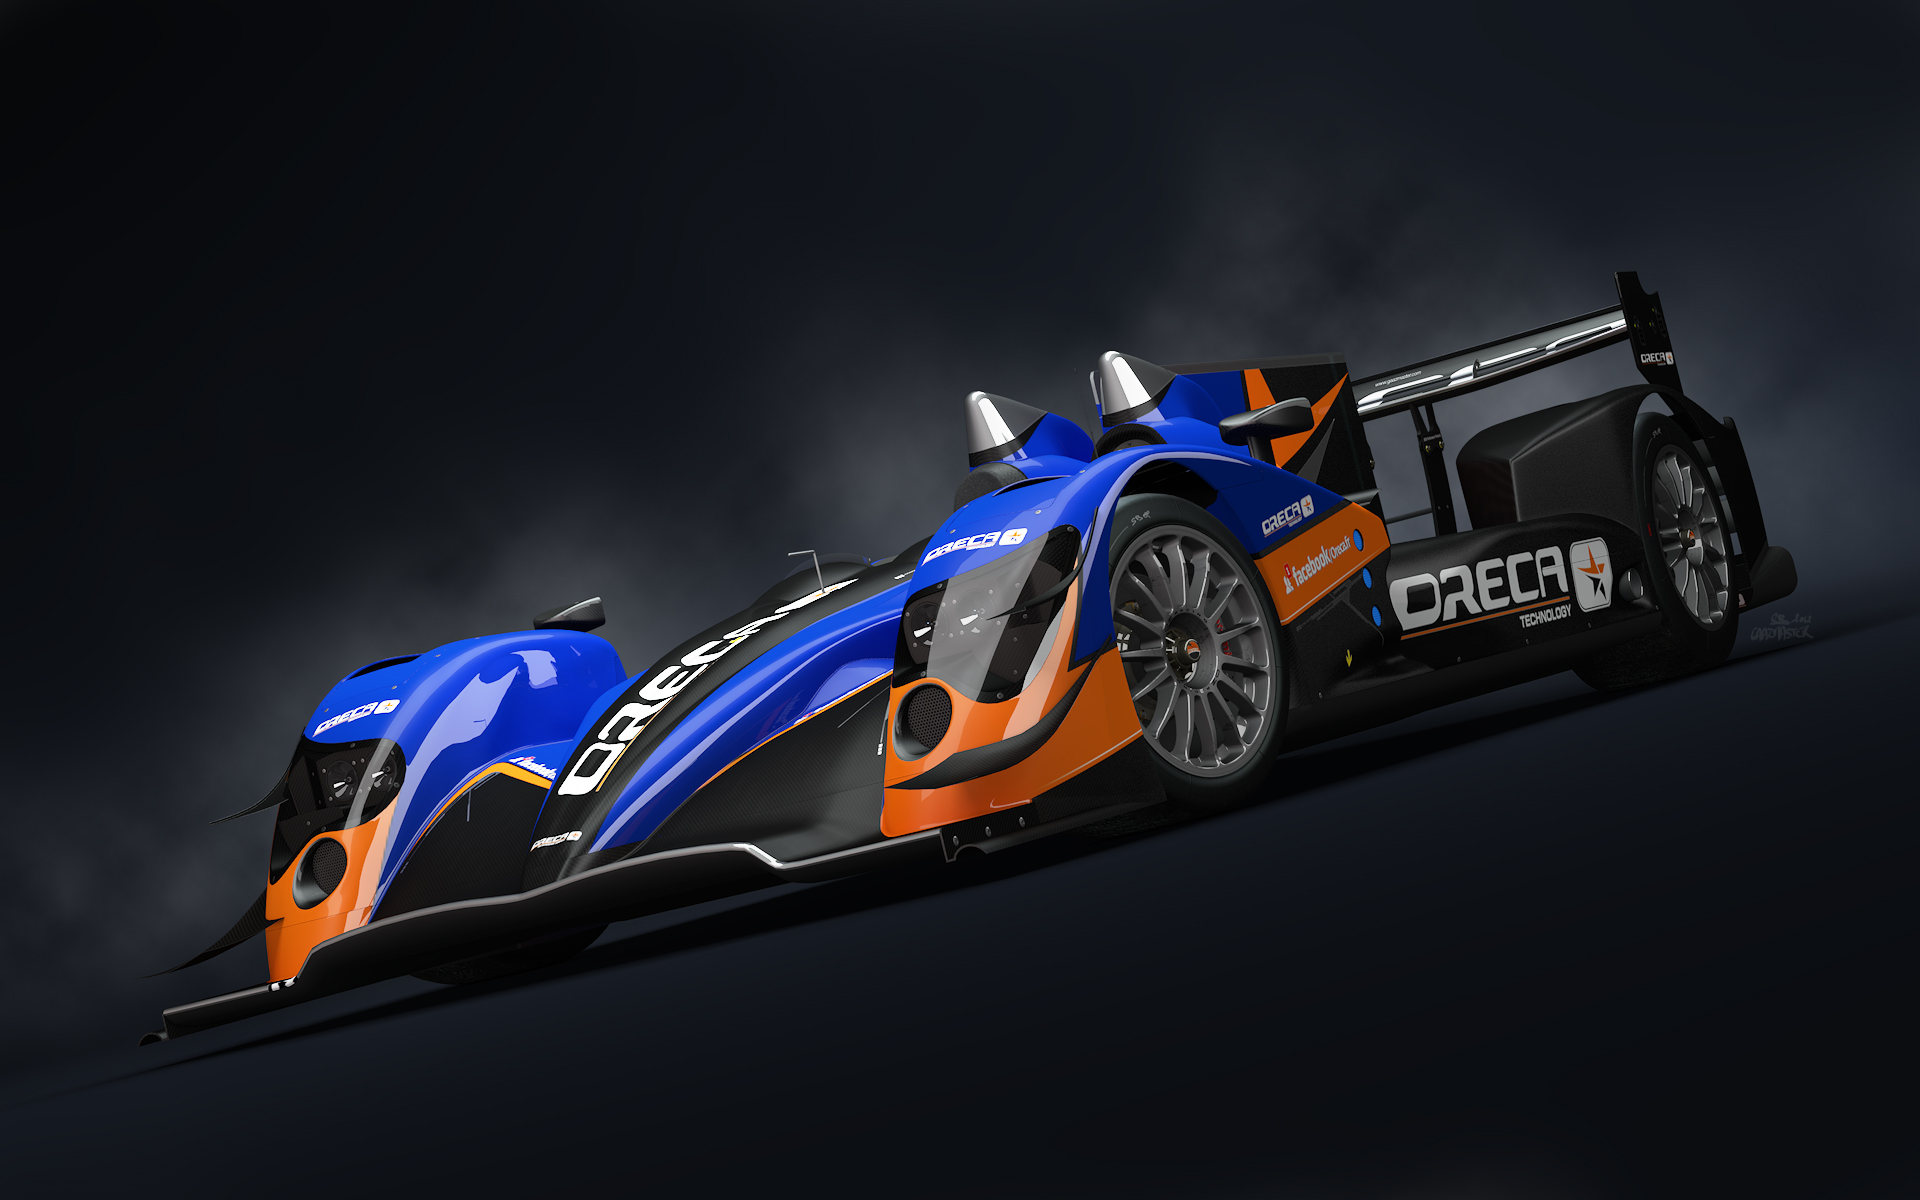 Using ChassisSim to design a race car